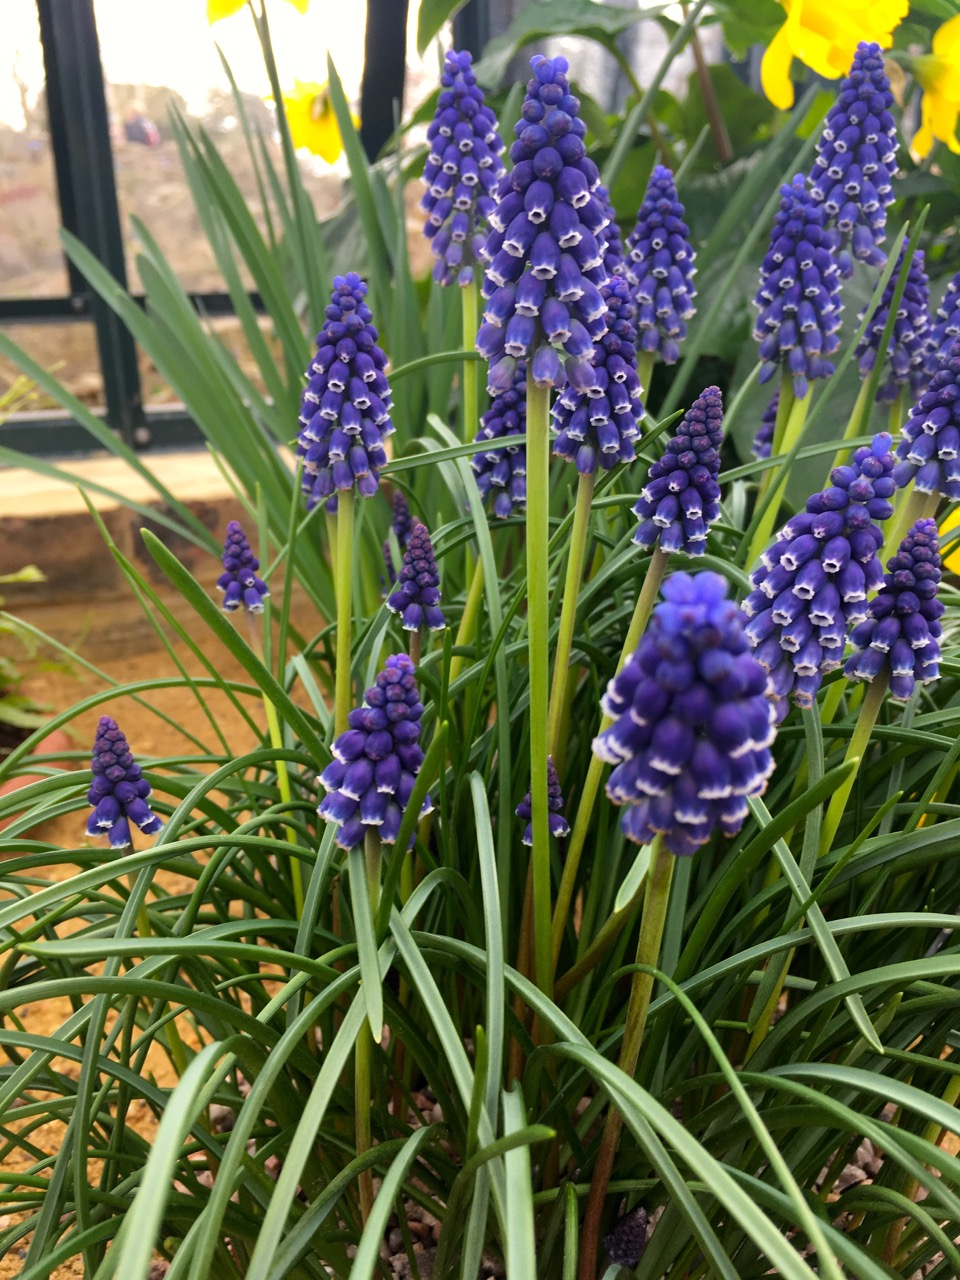 Muscari - or grape hyacinth - in the Alpine House at RHS Wisley